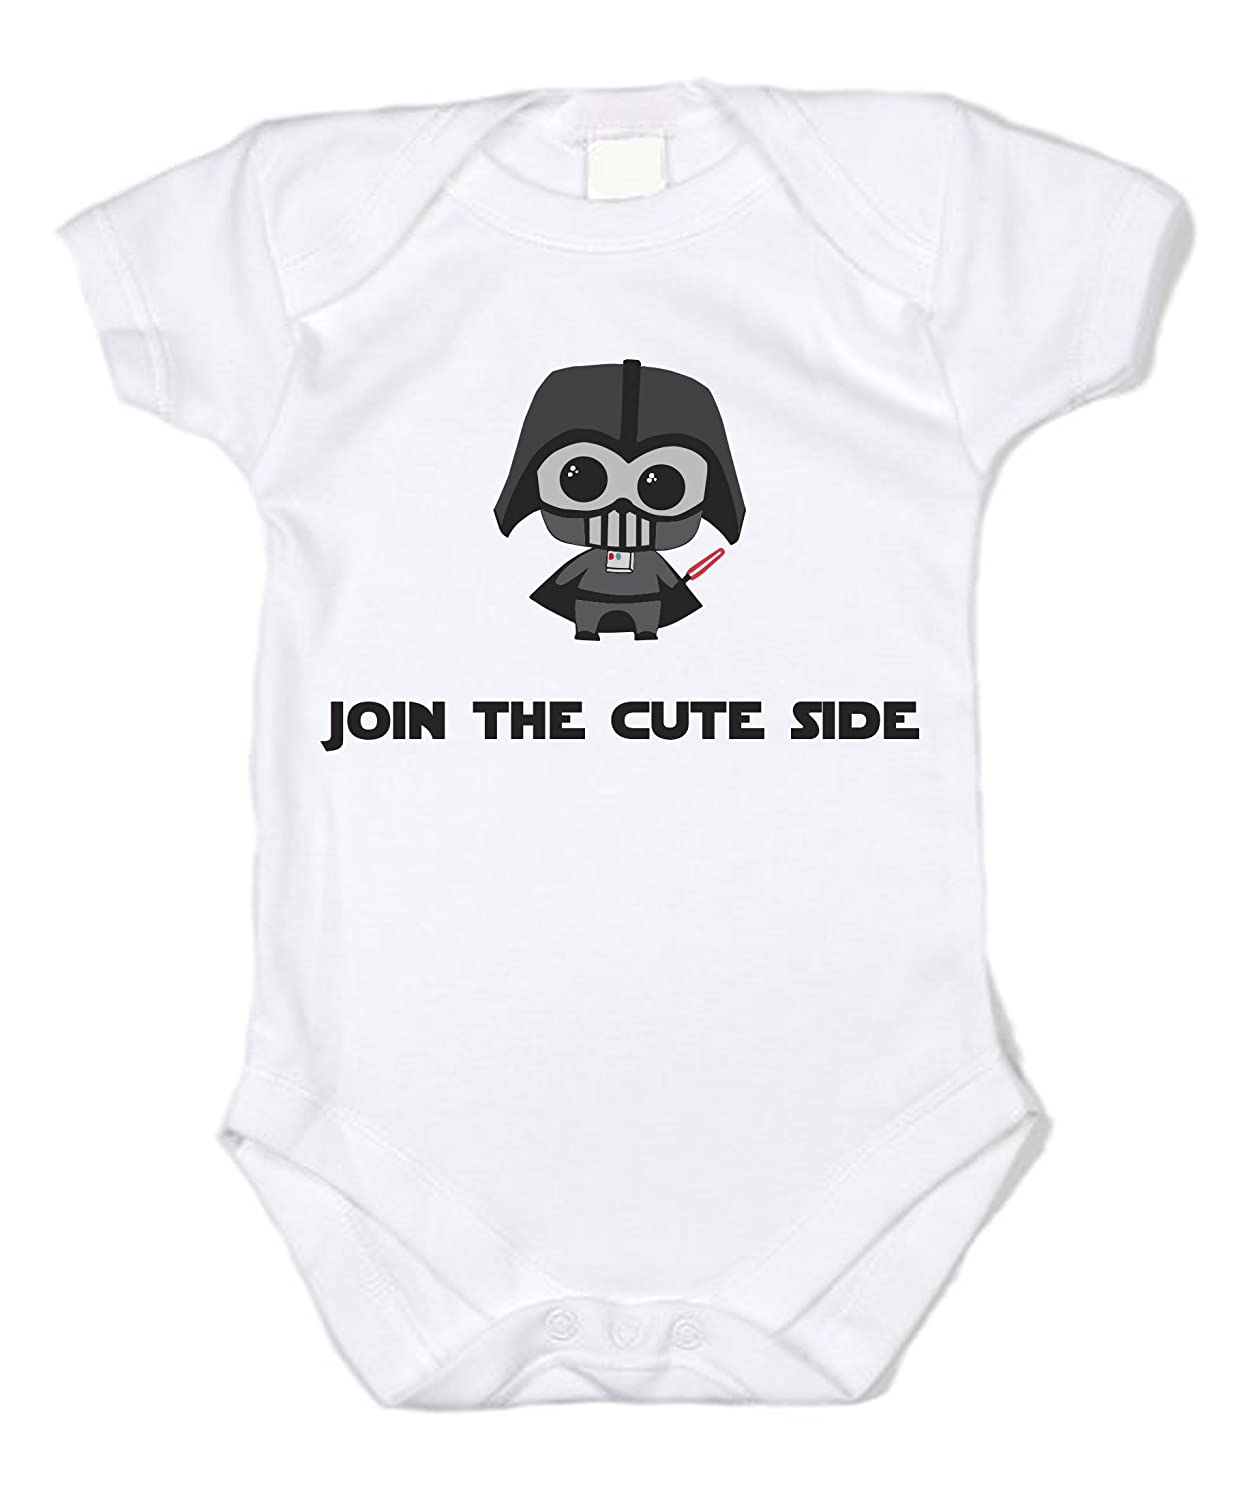 Wrap your little one in custom Star baby clothes. Cozy comfort at Zazzle! Personalized baby clothes for your bundle of joy. Choose from huge ranges of designs today!